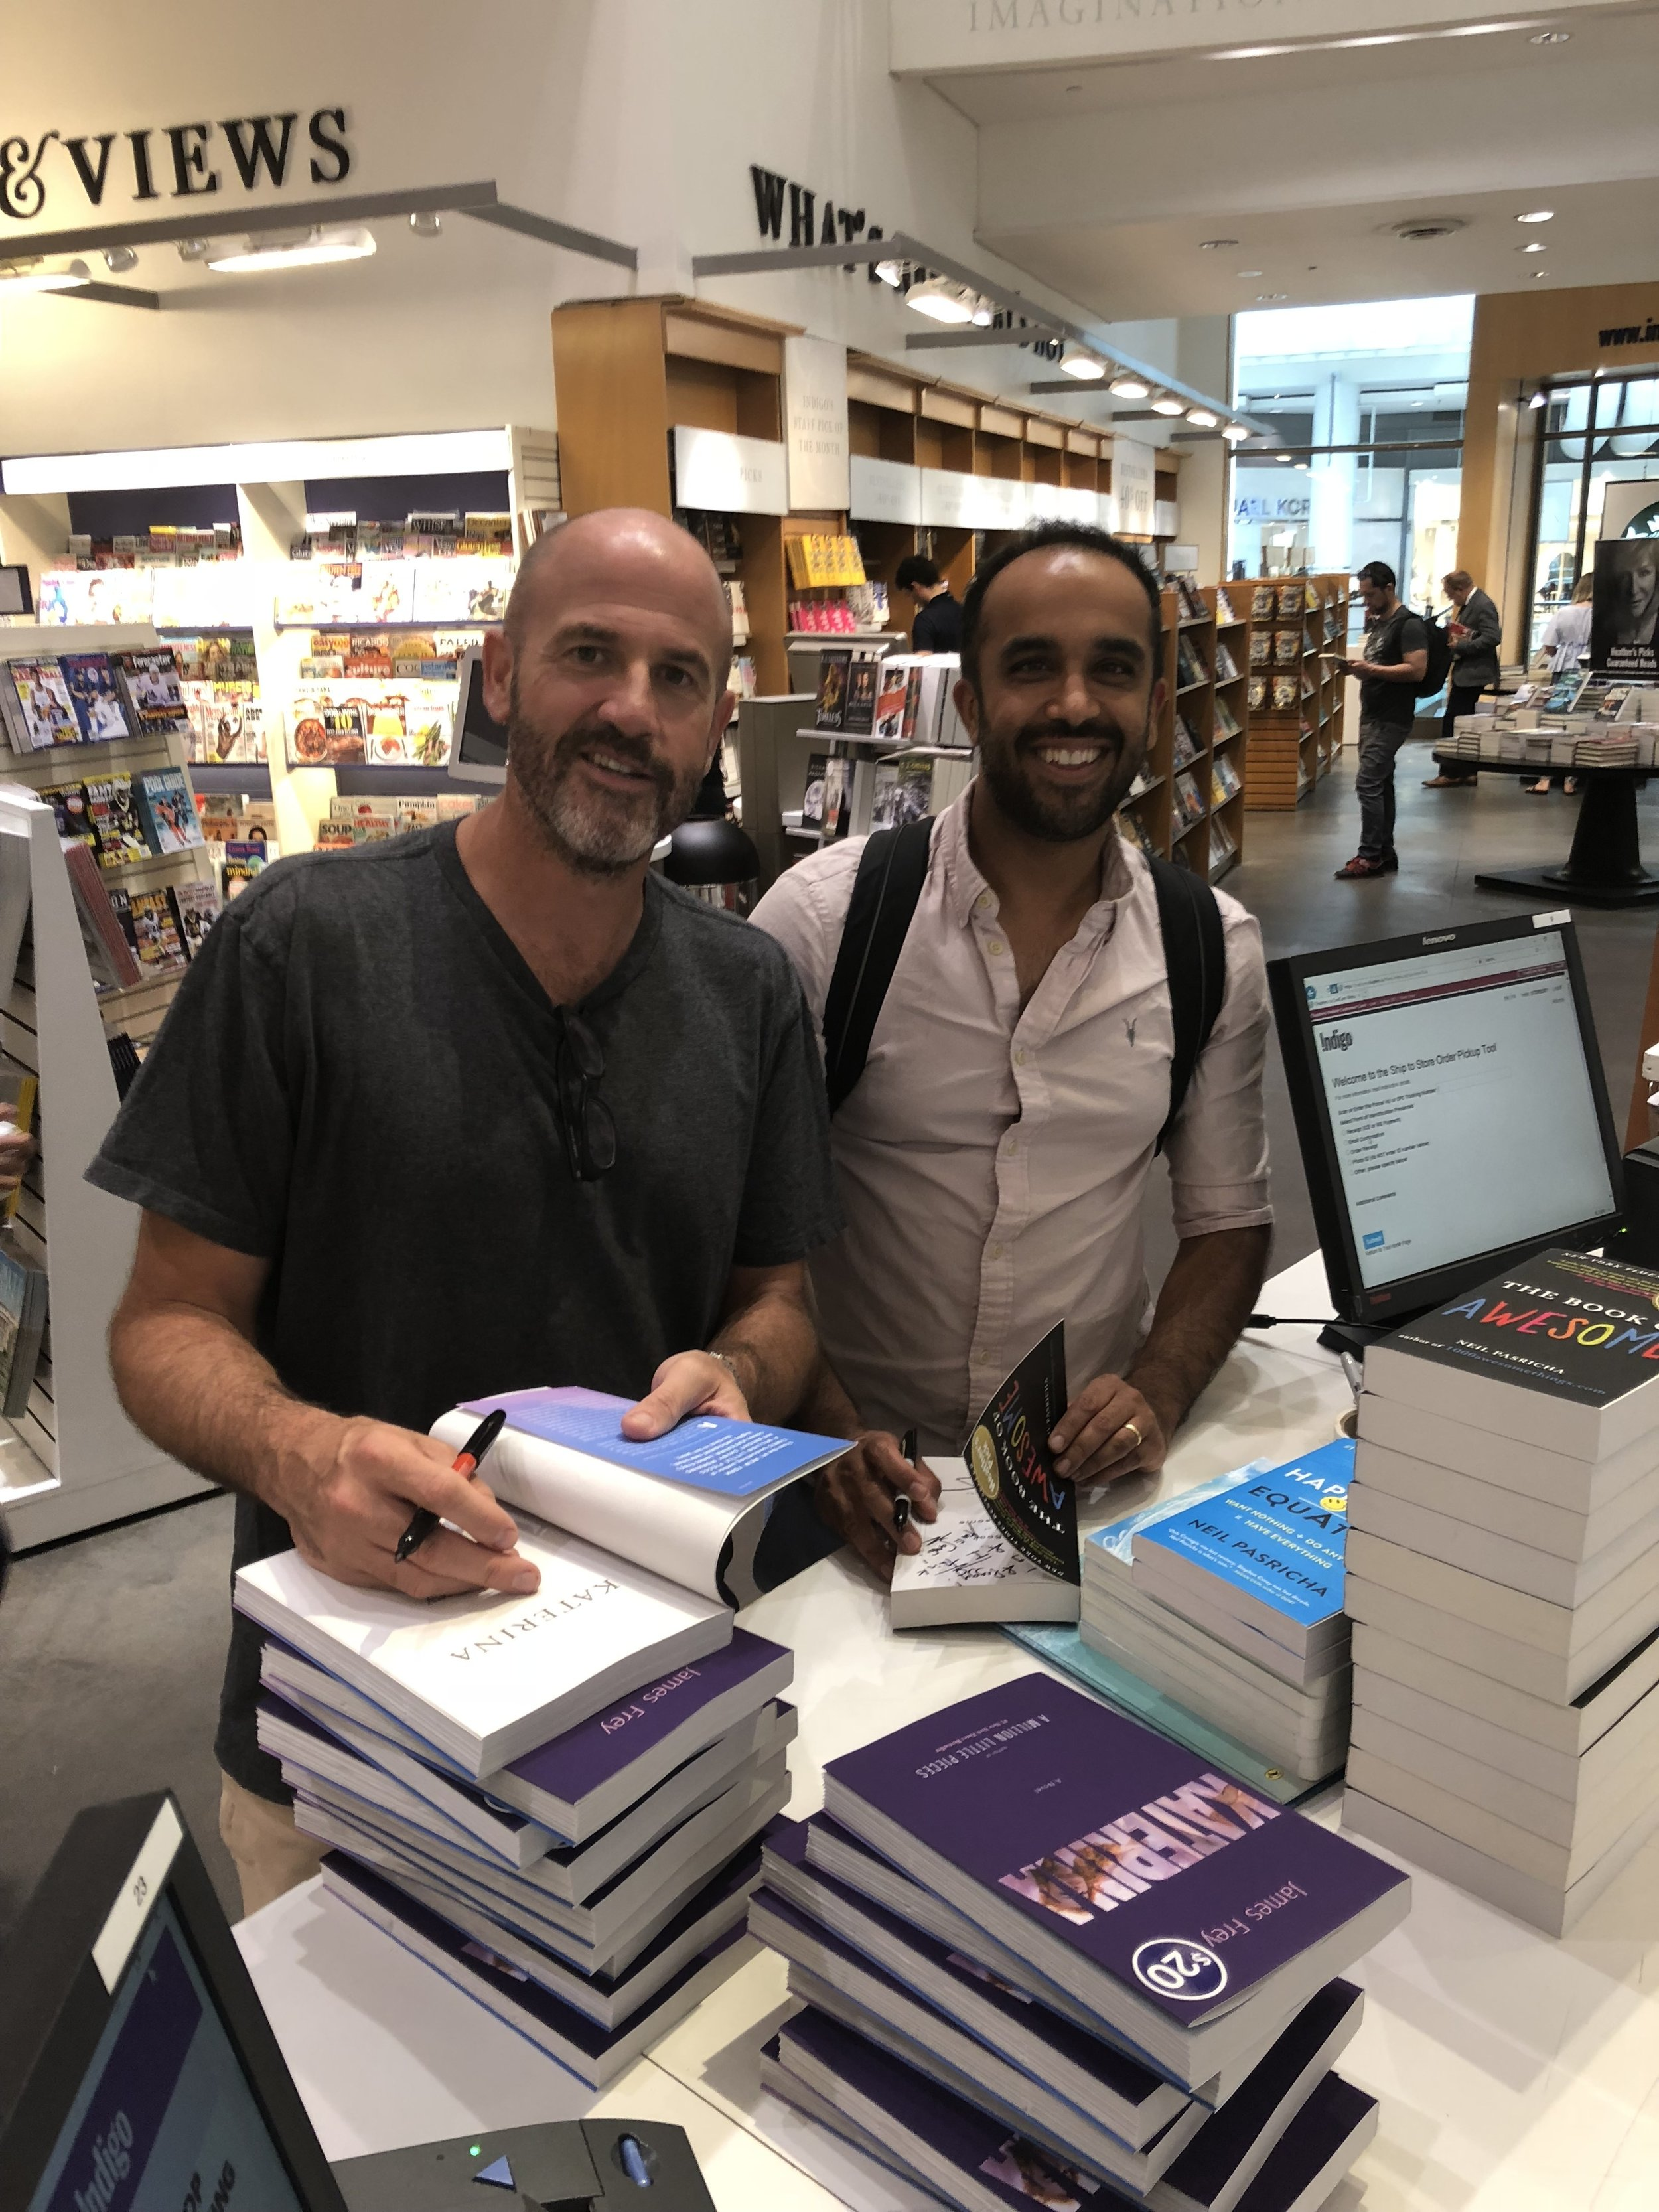 We capped off our podcast by going to a local bookstore and signing both of our books.